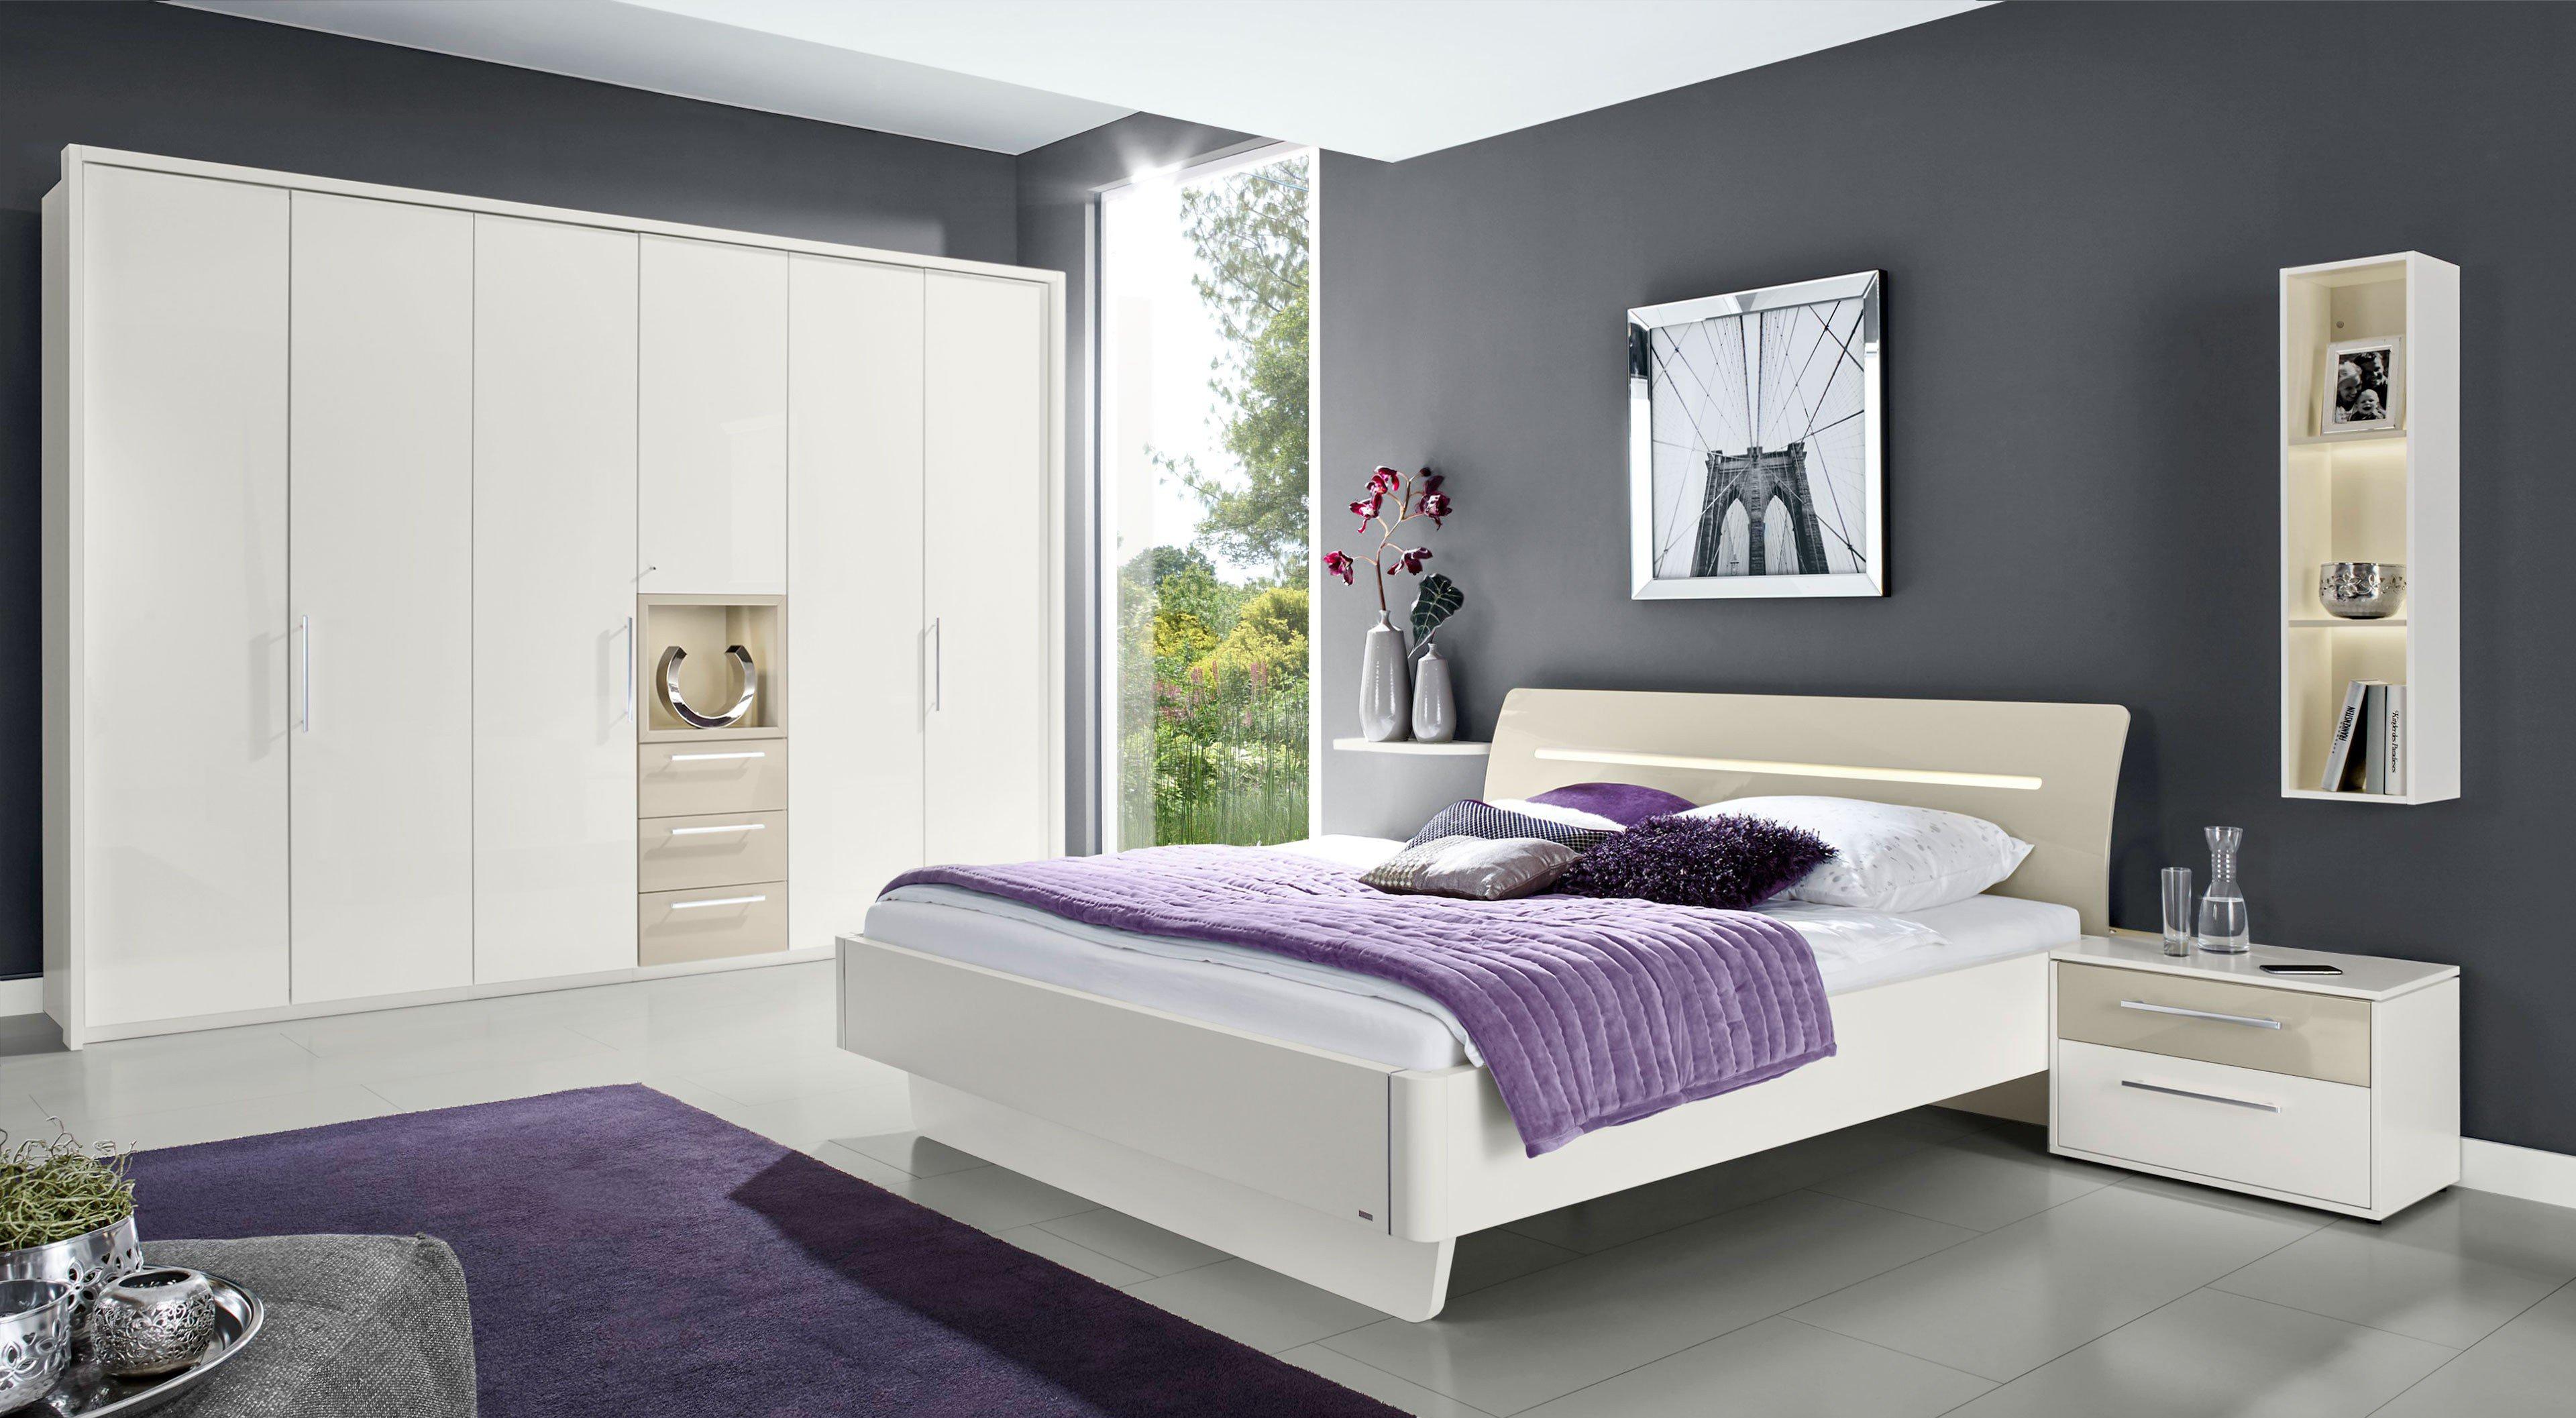 loddenkemper meo schlafzimmer hochglanz m bel letz ihr. Black Bedroom Furniture Sets. Home Design Ideas